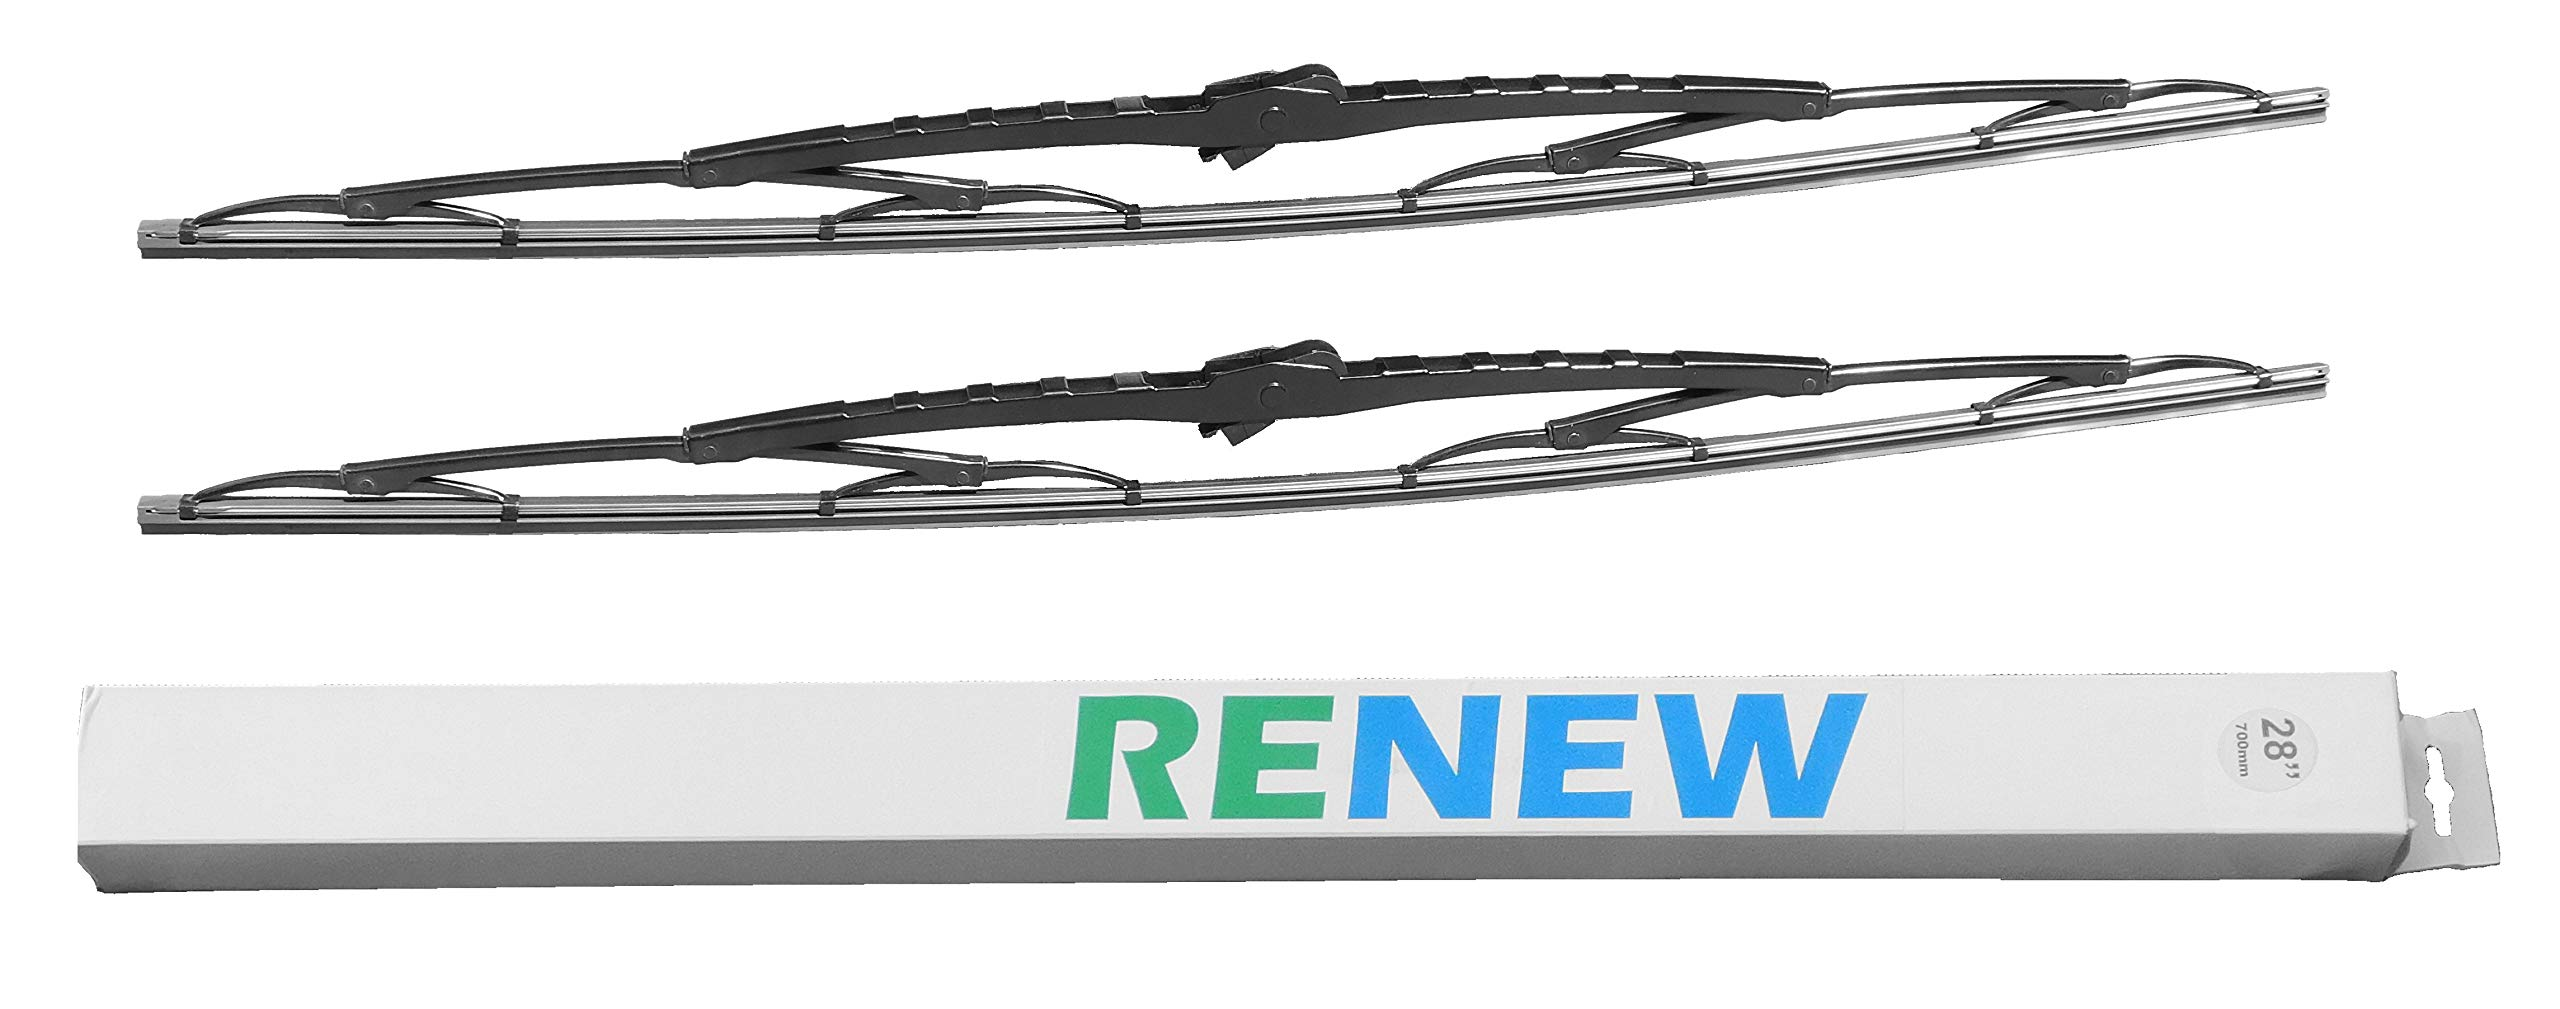 28 Inch Wiper Blade Pair for RV or Motorhome with large 12mm J Hook by Renew